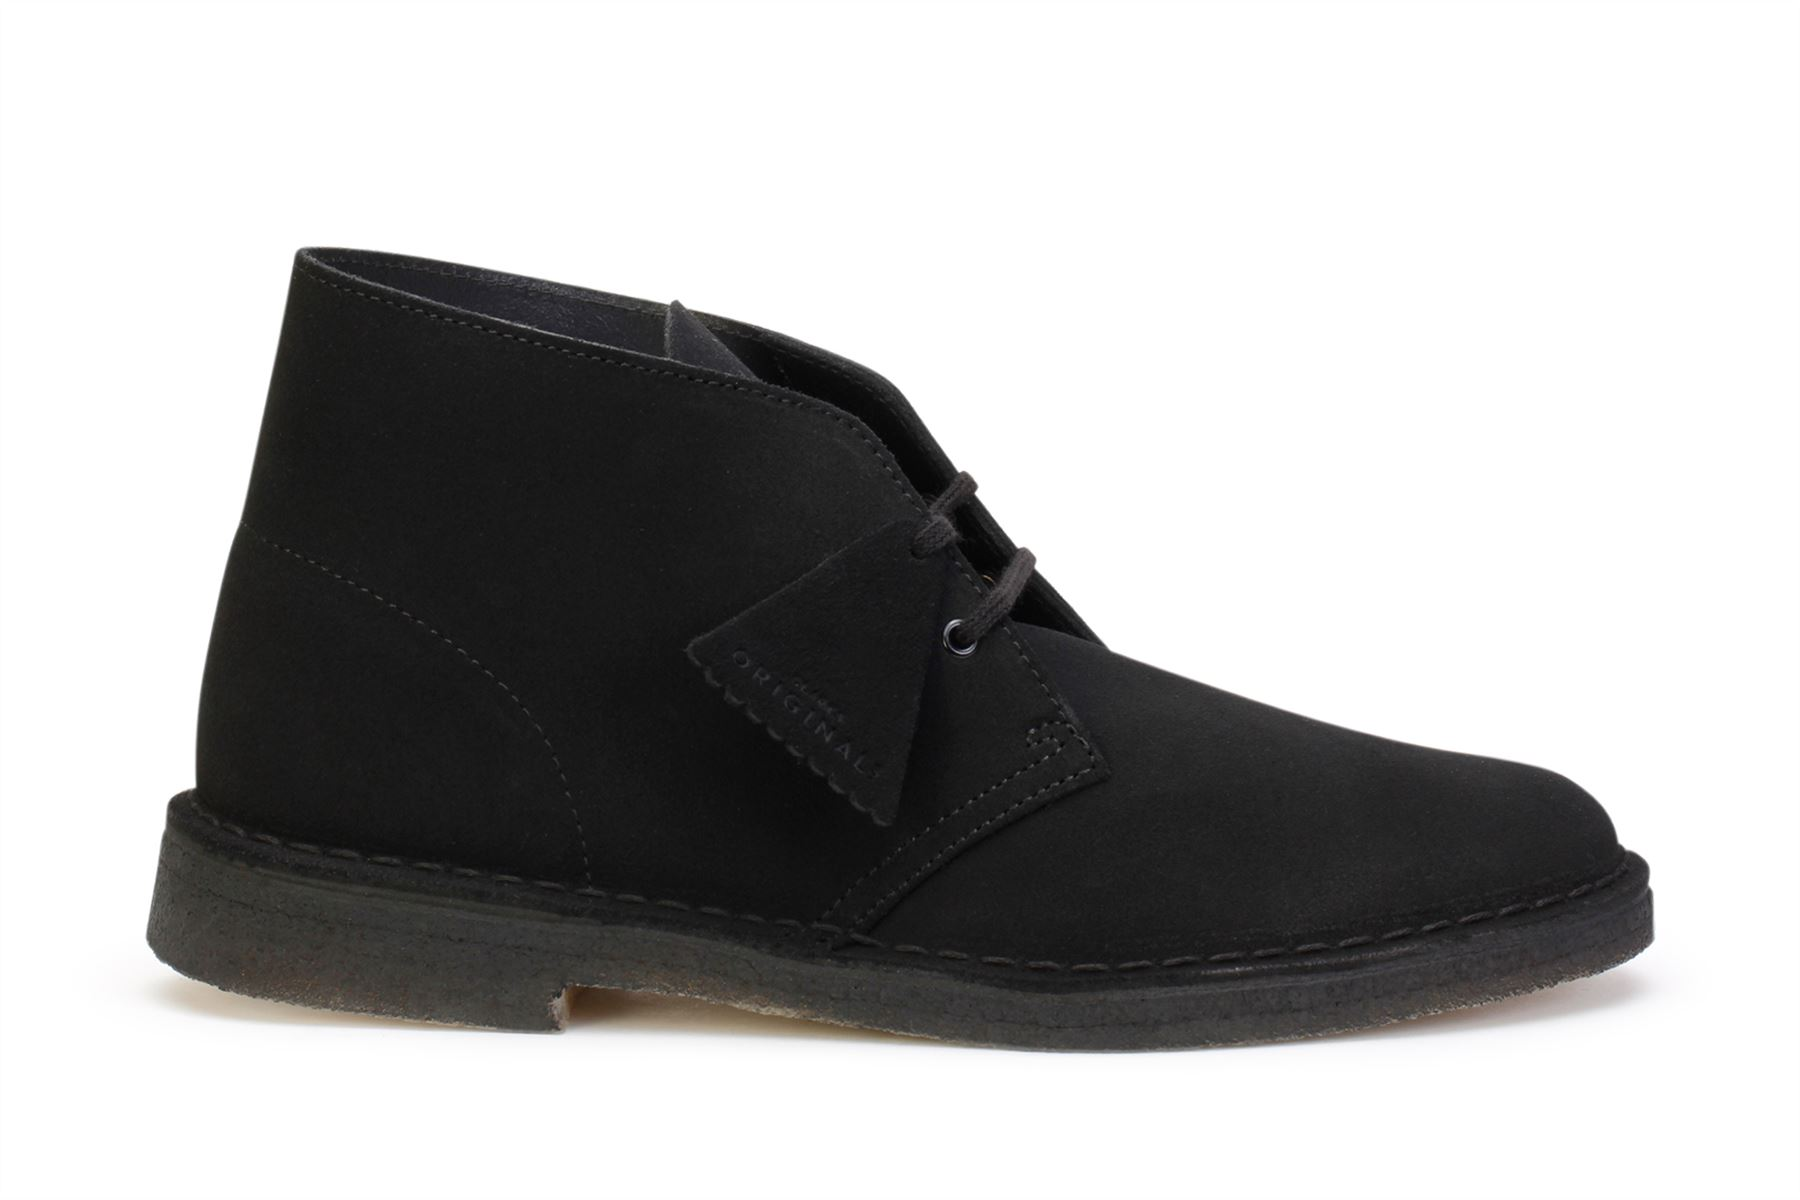 Clarks Originals Men's Desert Boots Black Suede 26138227